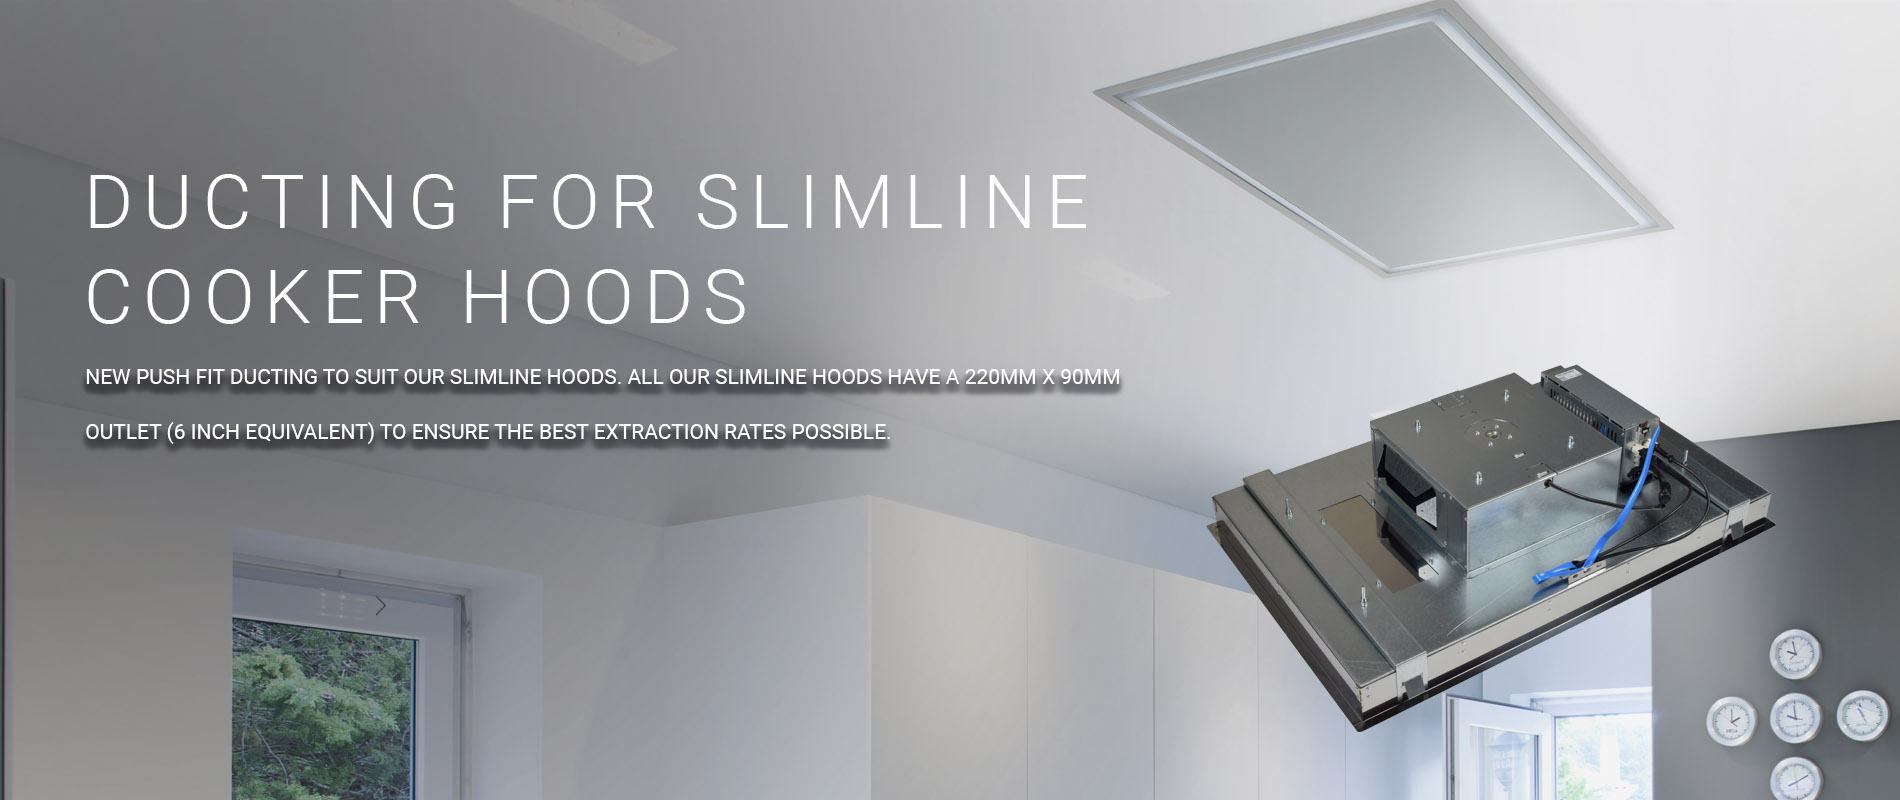 Ducting for slimline ceiling hoods